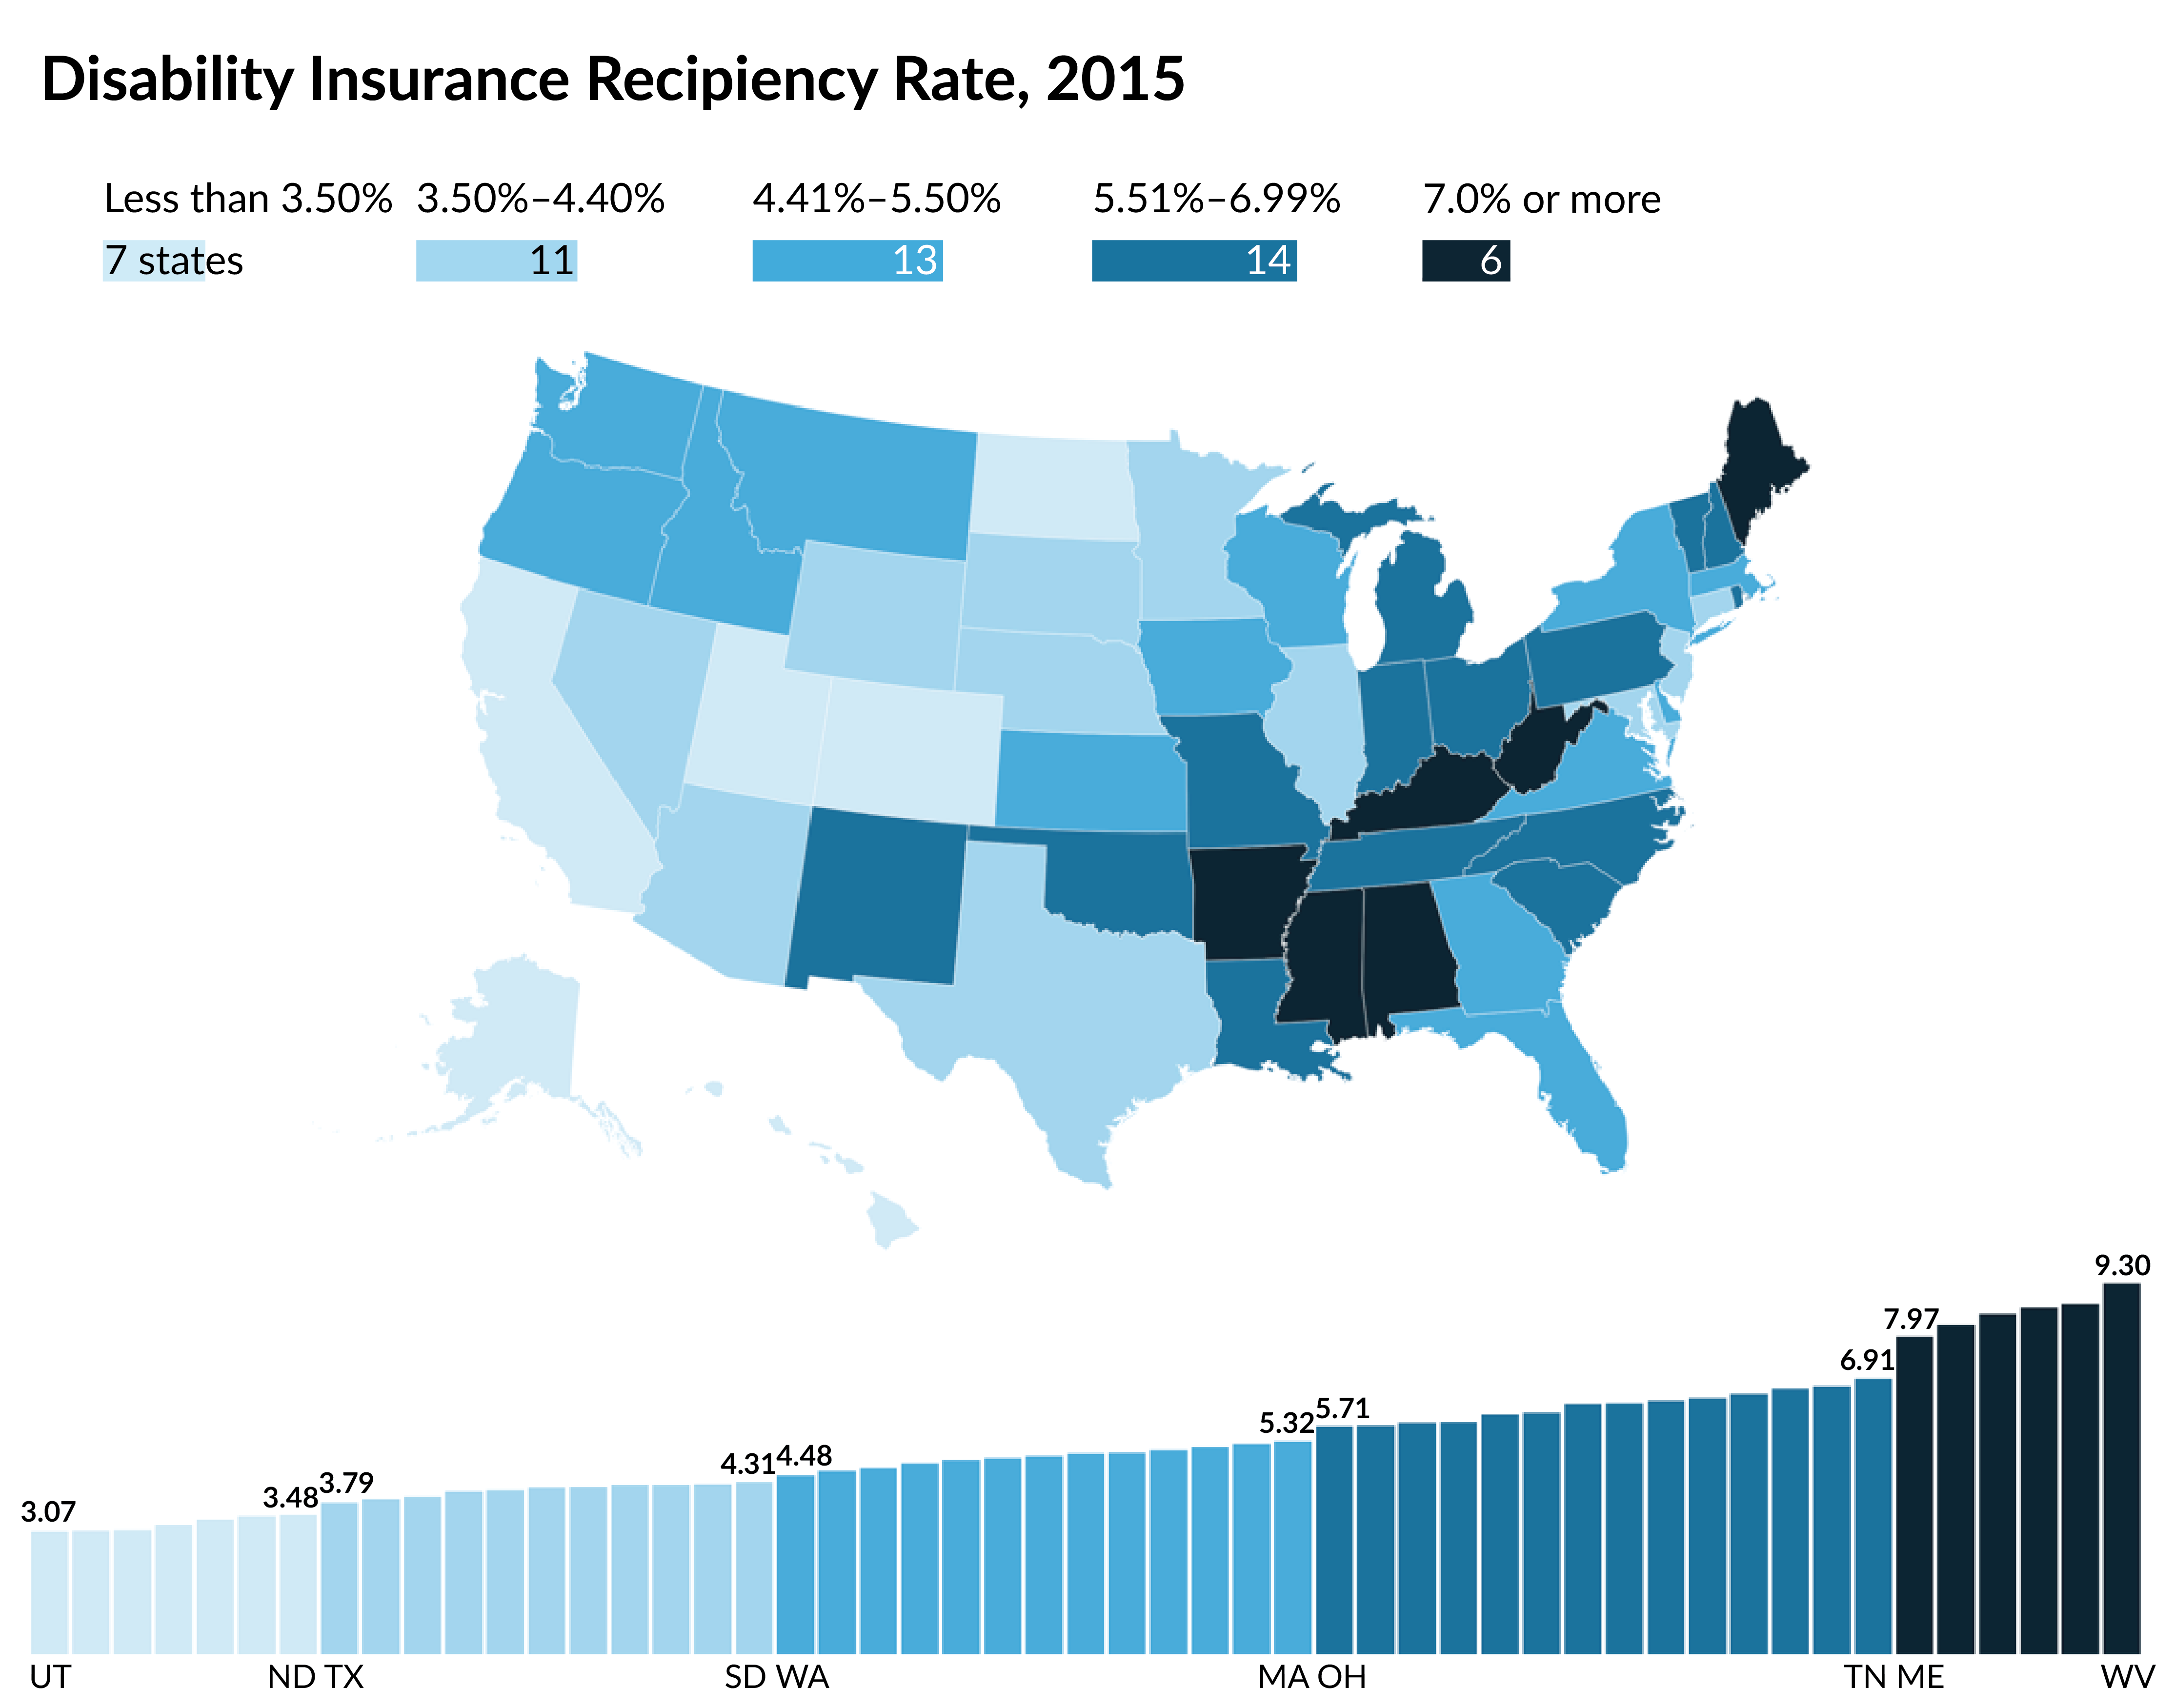 Disability Insurance Recipiency Rate, 2015 map 3